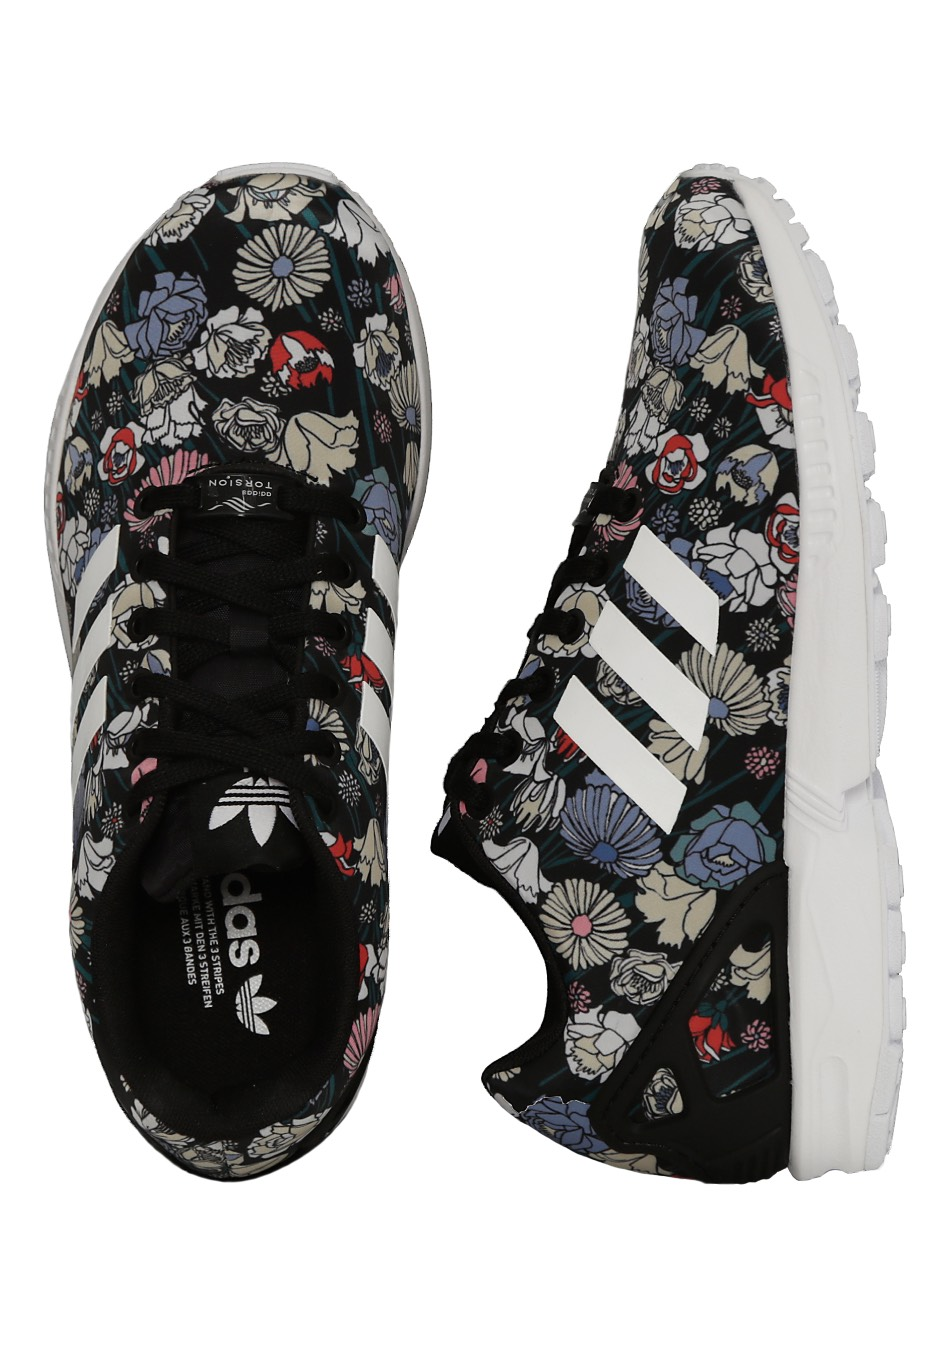 huge discount 09ba7 2cd6d Adidas - ZX Flux W Core BlackCore BlackFTWR White - Girl Shoes -  Impericon.com AU